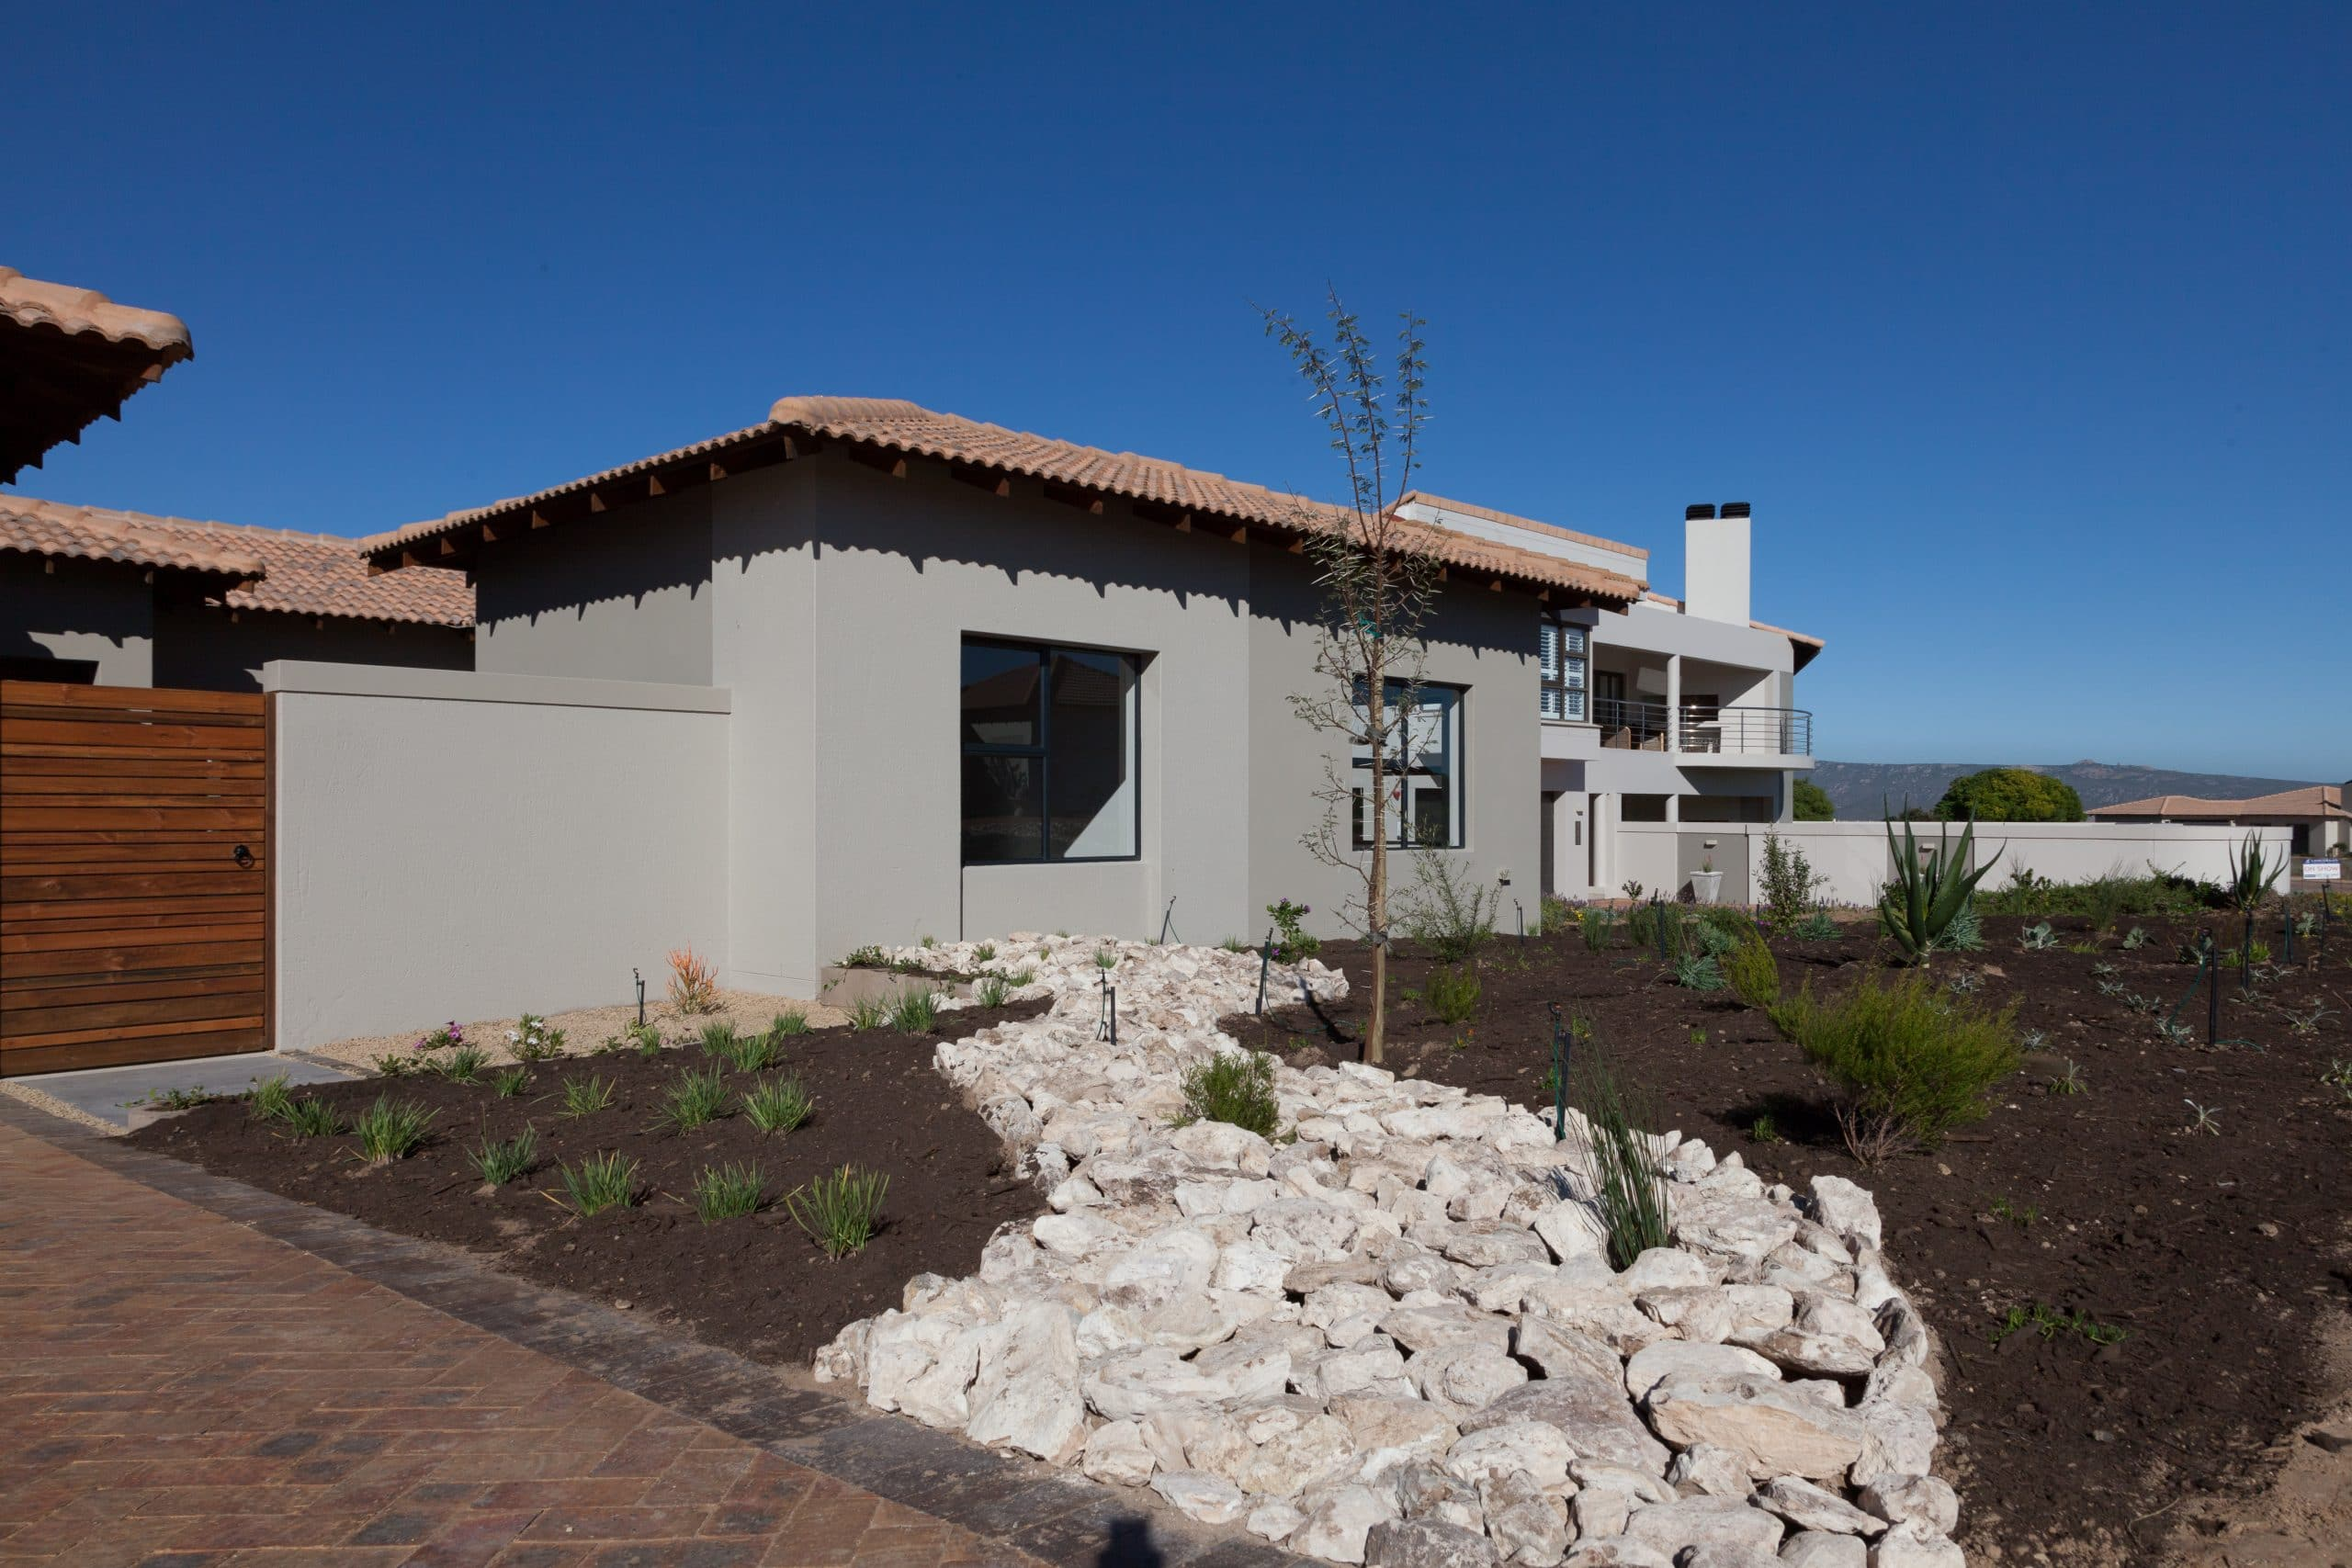 designer garden with white rock and tree langebaan country estate